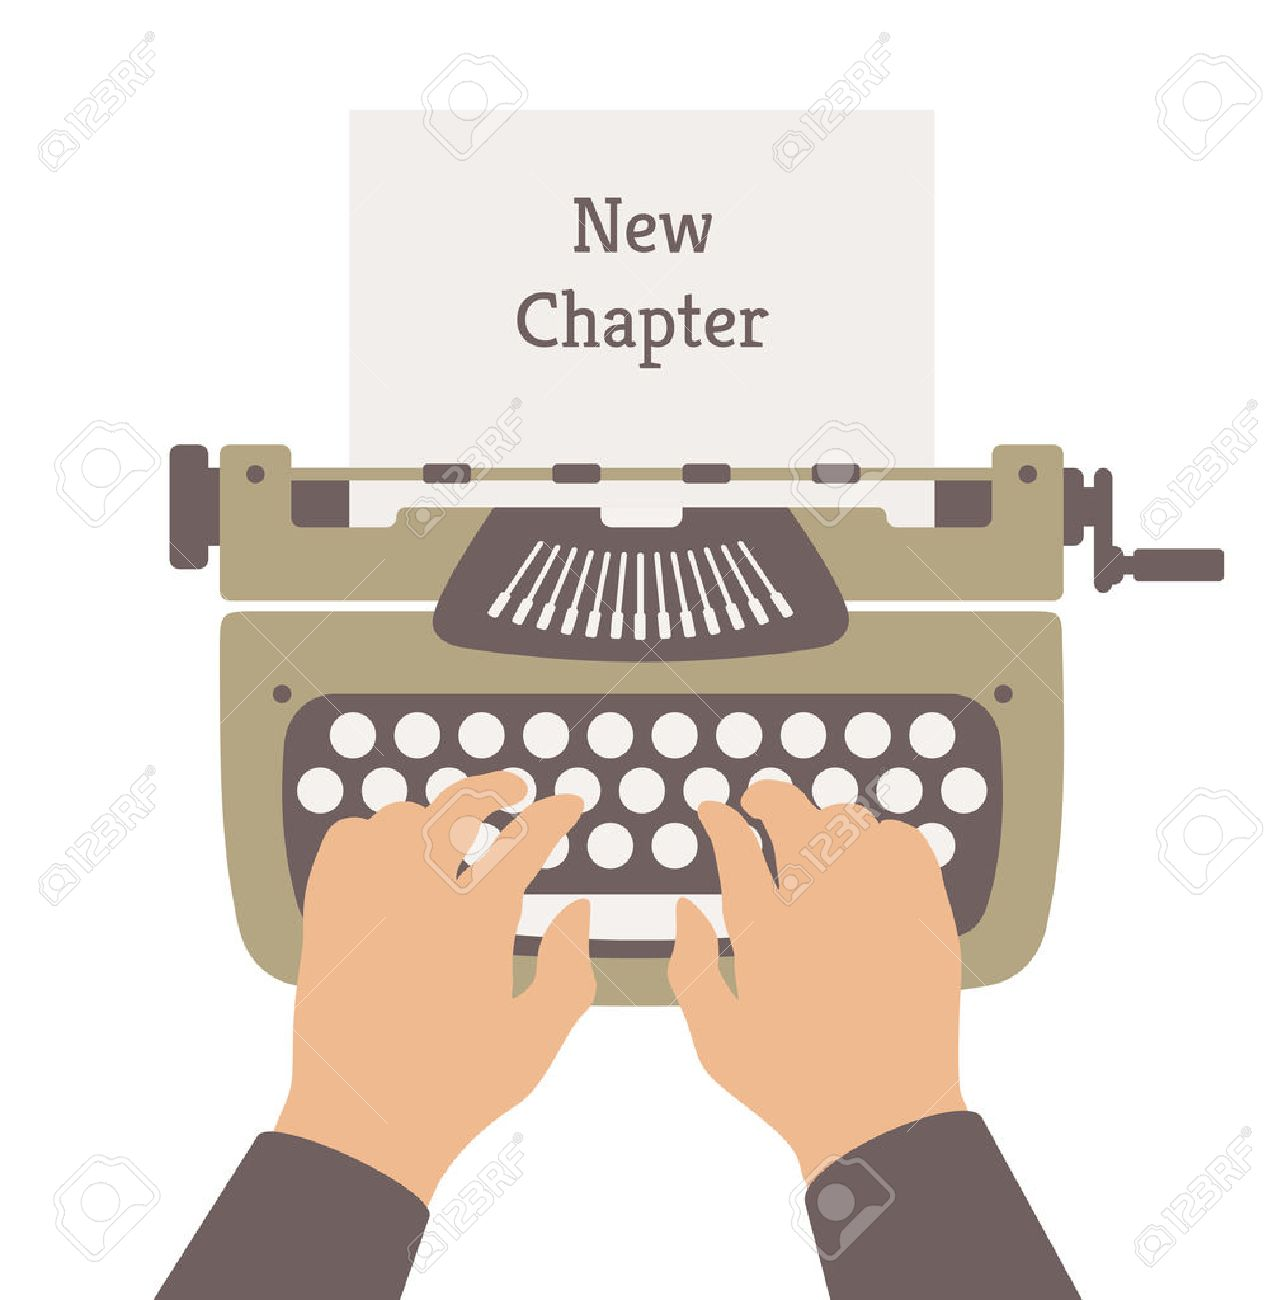 Flat design style modern vector illustration concept of author writing a new chapter in a novel story on a manual vintage stylish typewriter  Isolated on white background Stock Vector - 26073532